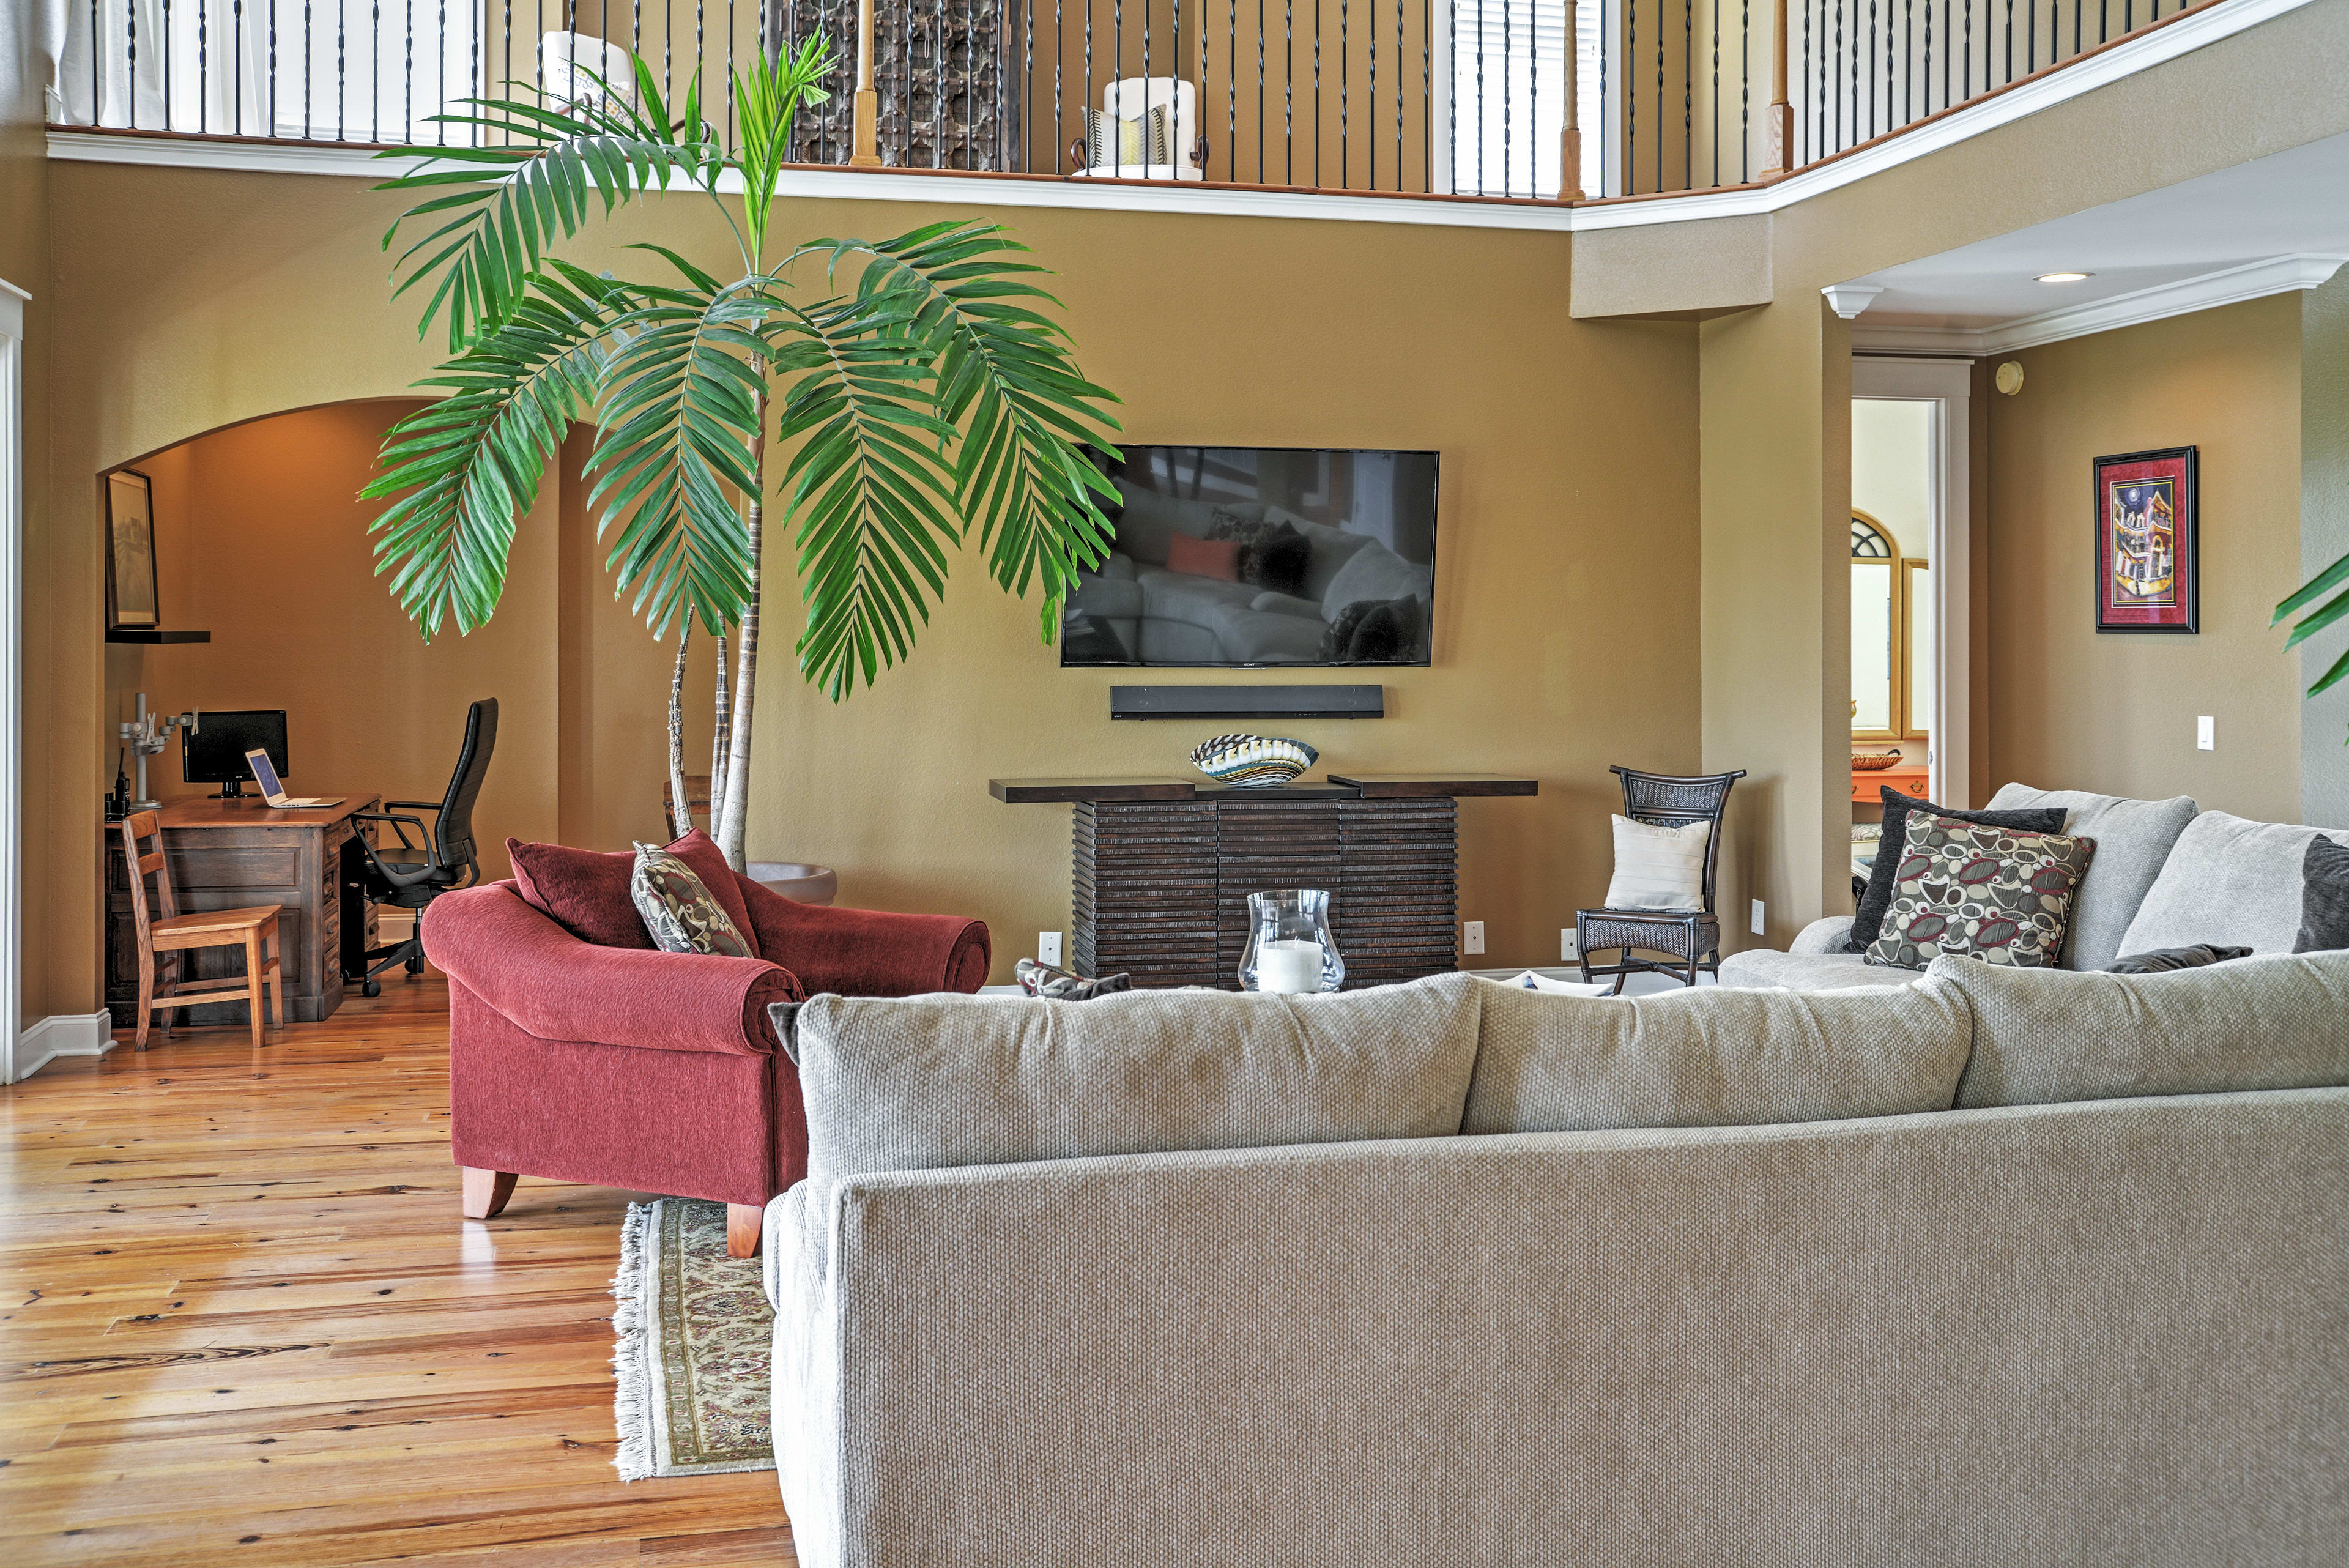 The home is furnished with extremely comfortable furniture.